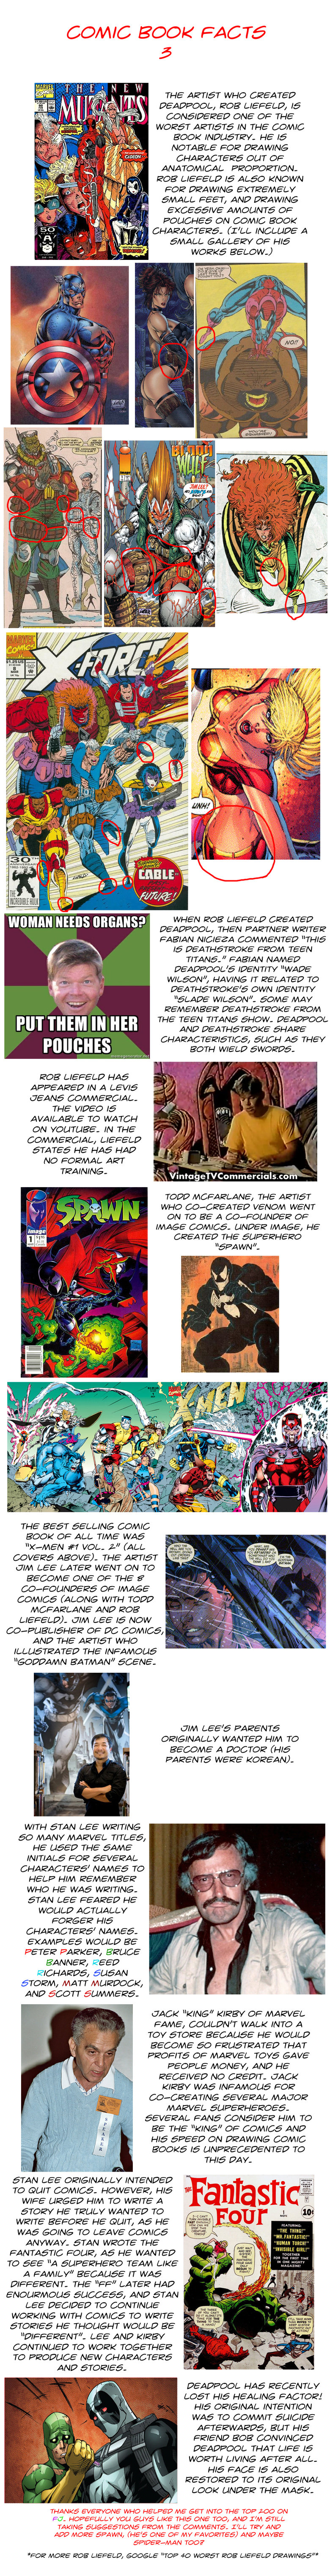 Comic Book Facts 3. More creator based facts (I tried throwing in more Deadpool).. Didn't know any of those I liked the Stan Lee's alliteration in names :P And Deadpool losing his healing factor :<